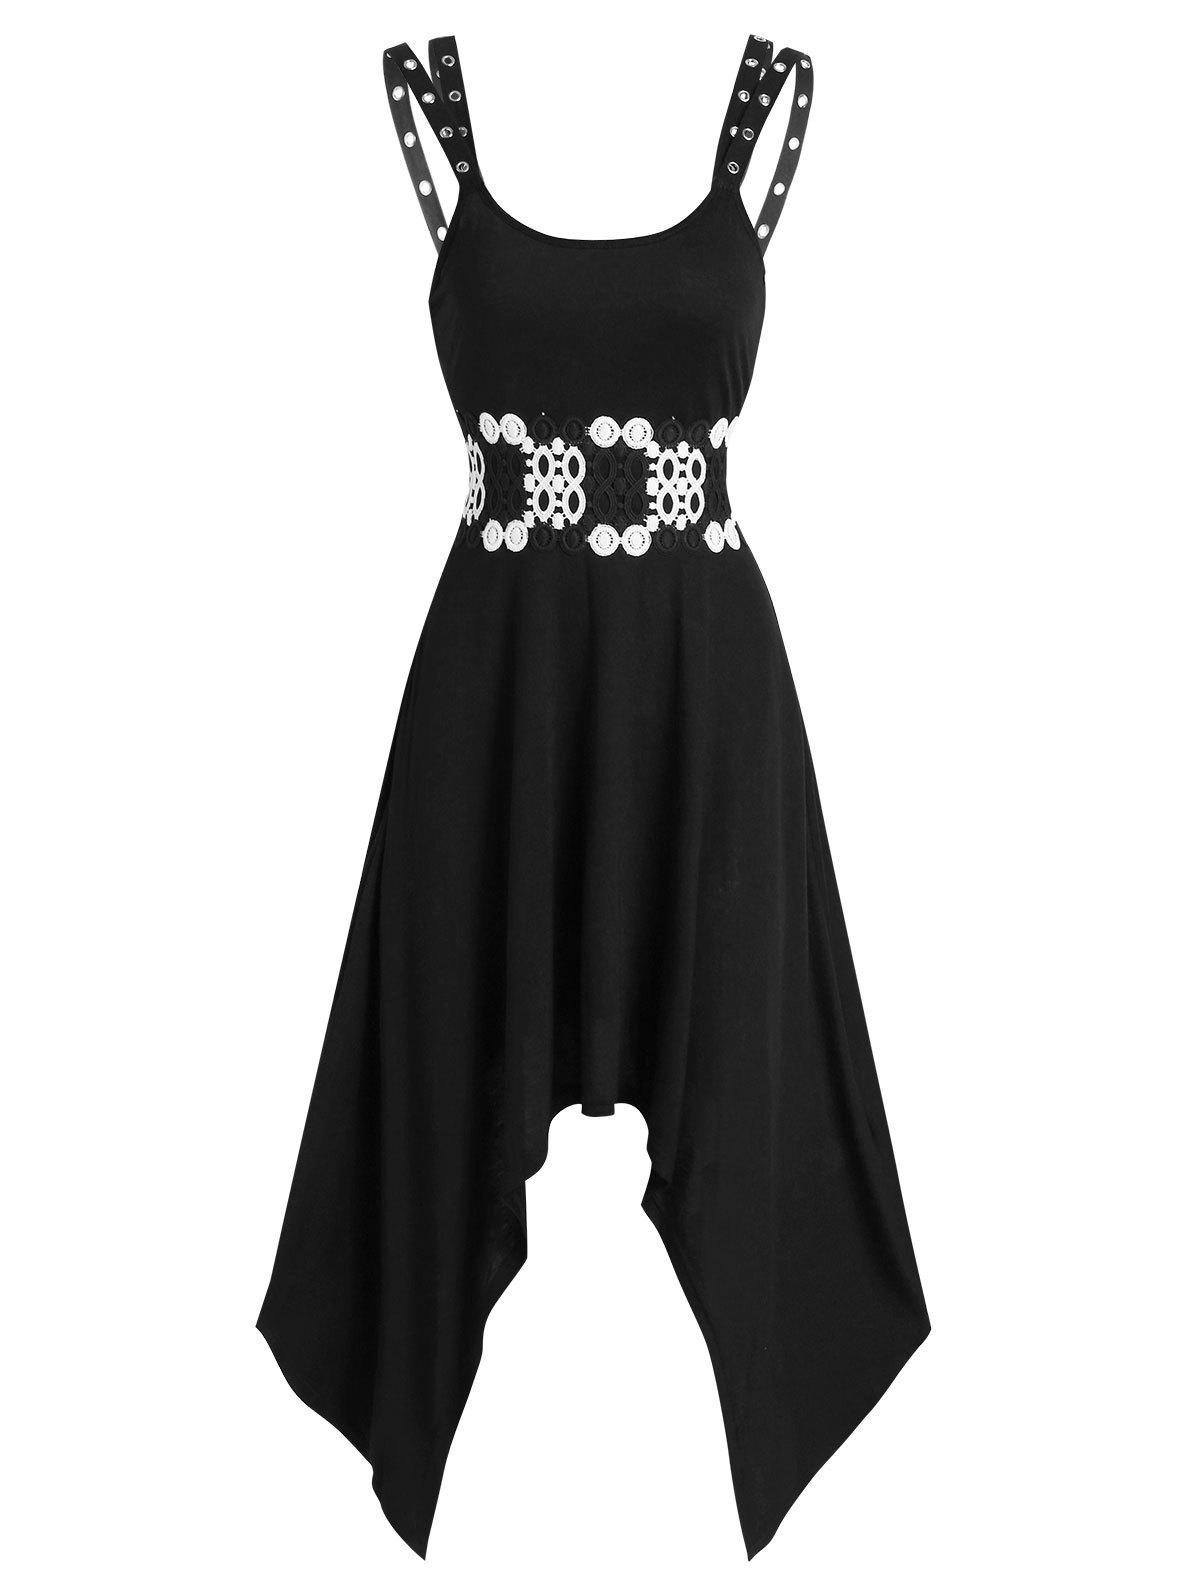 Grommet Strap Asymmetrical Long Cami Dress